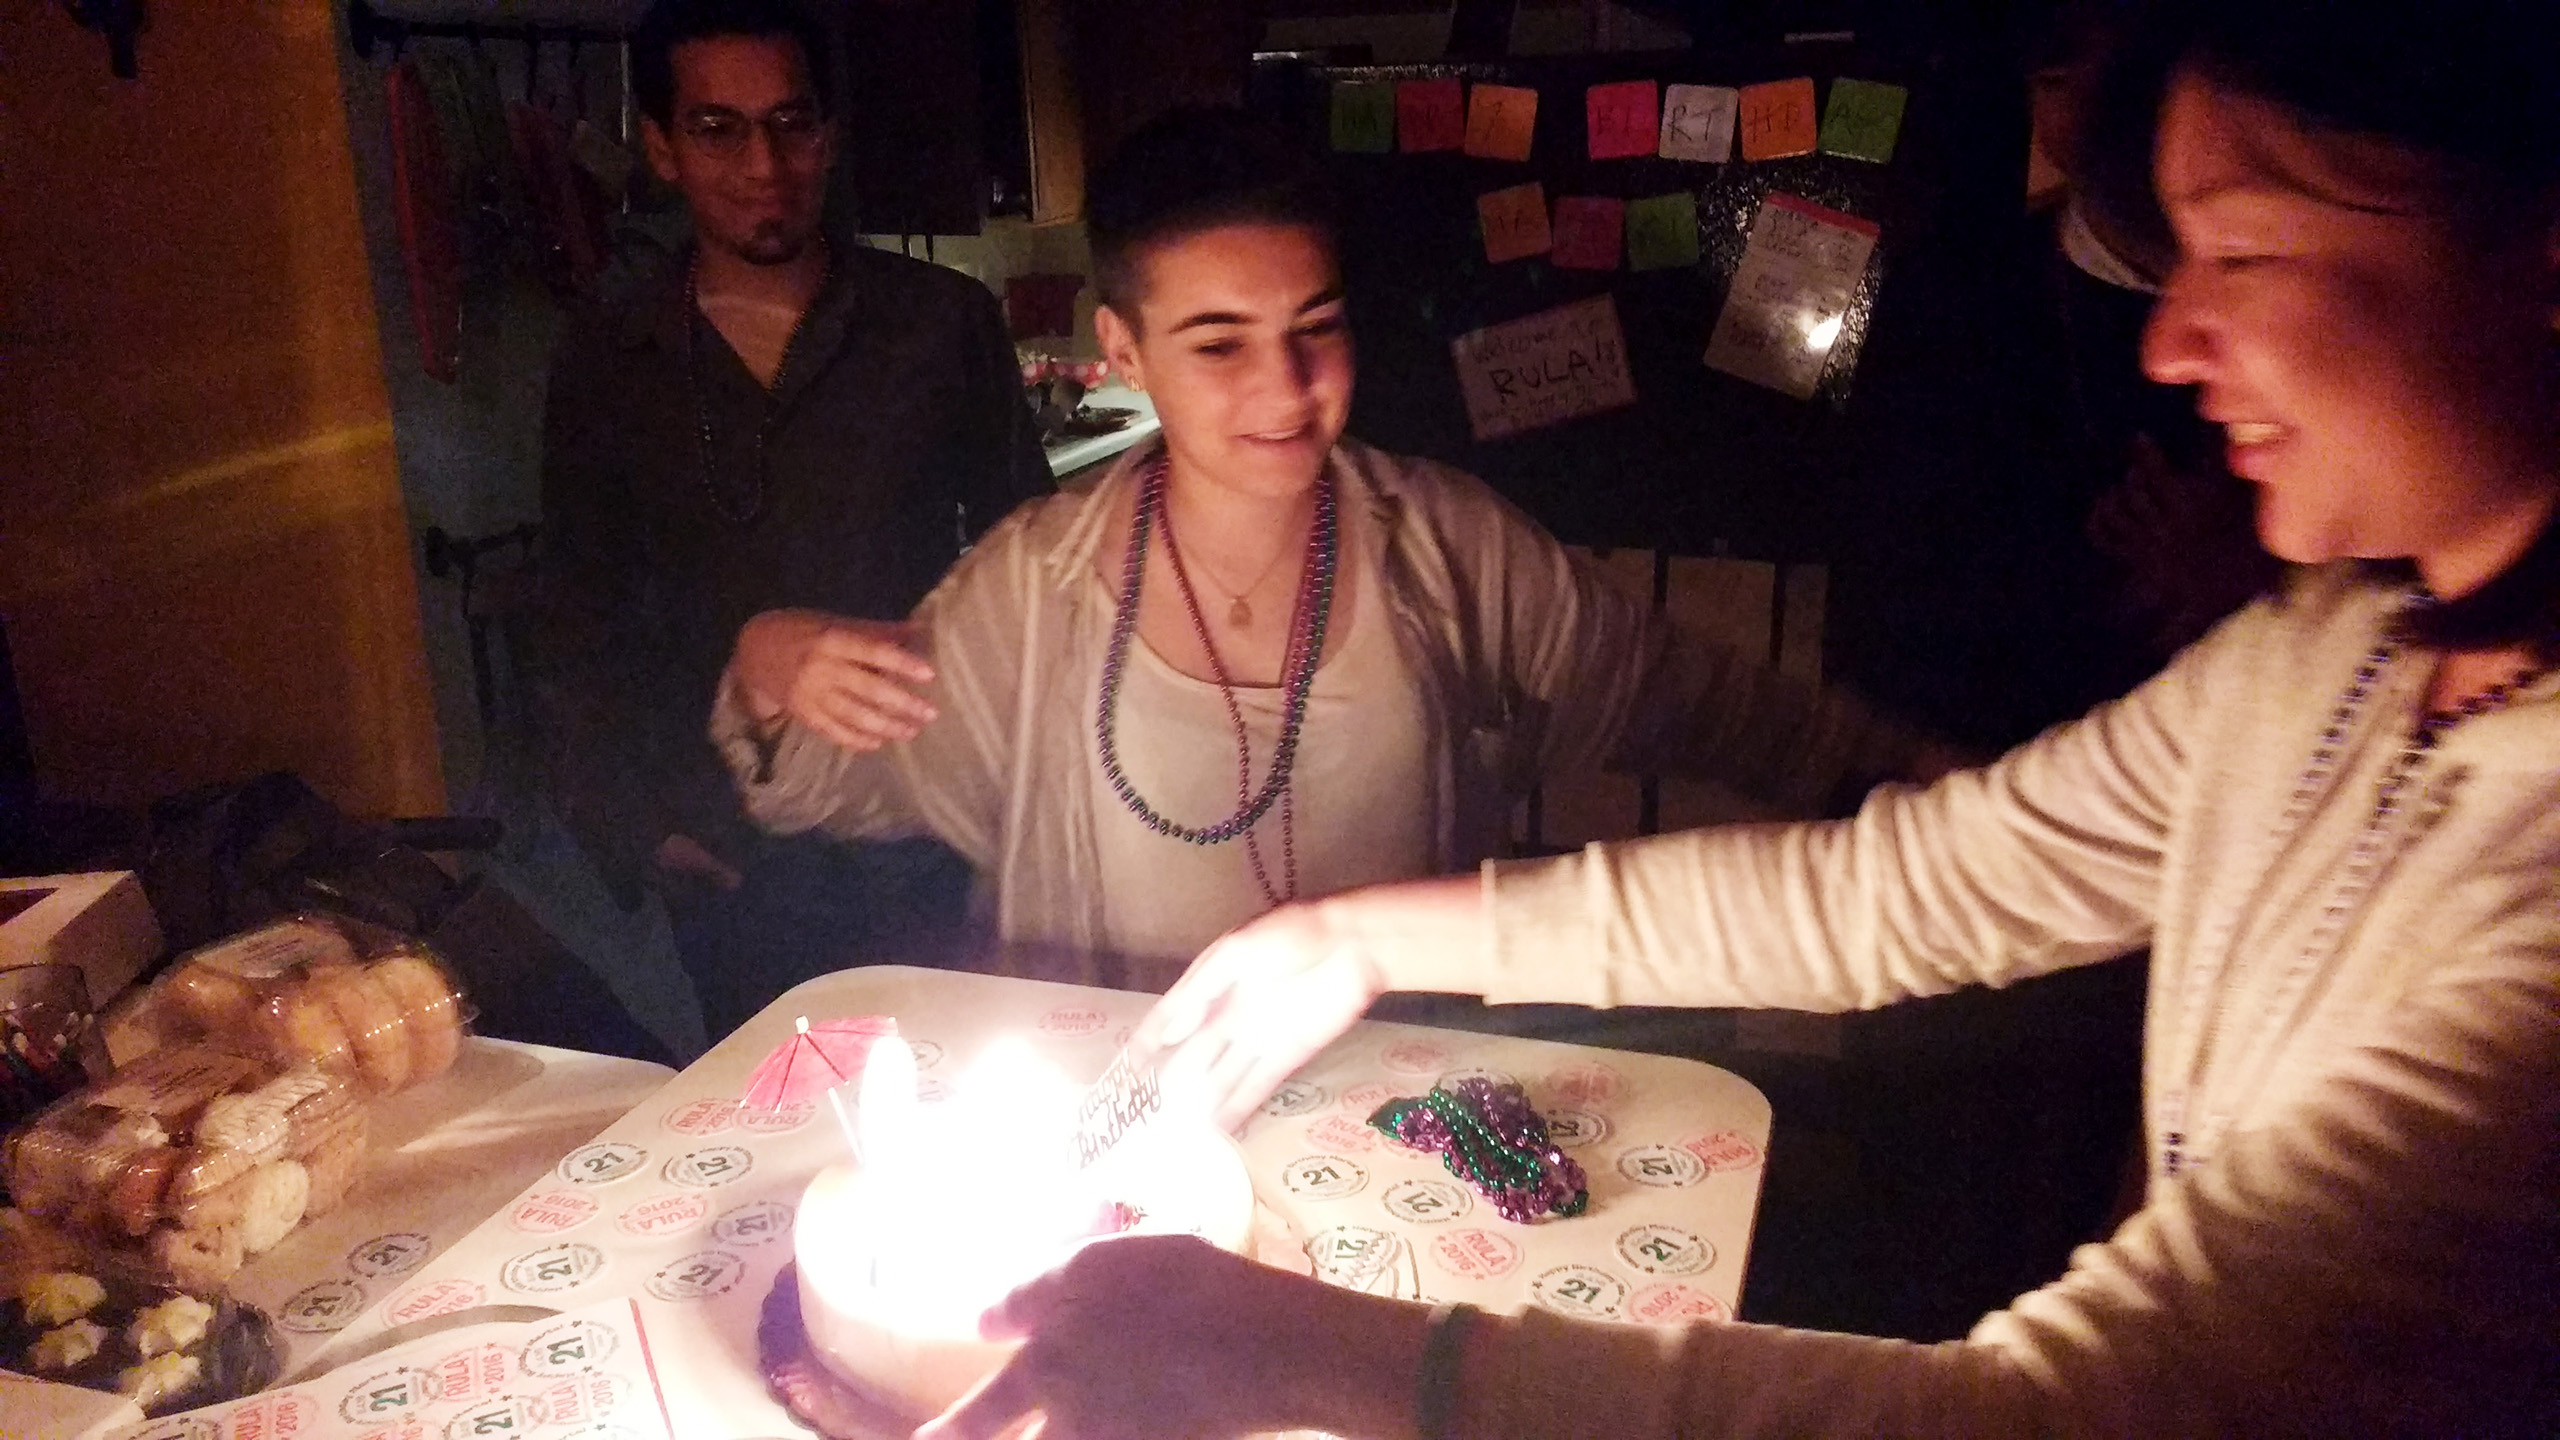 Ada lights candles on Marta's cake